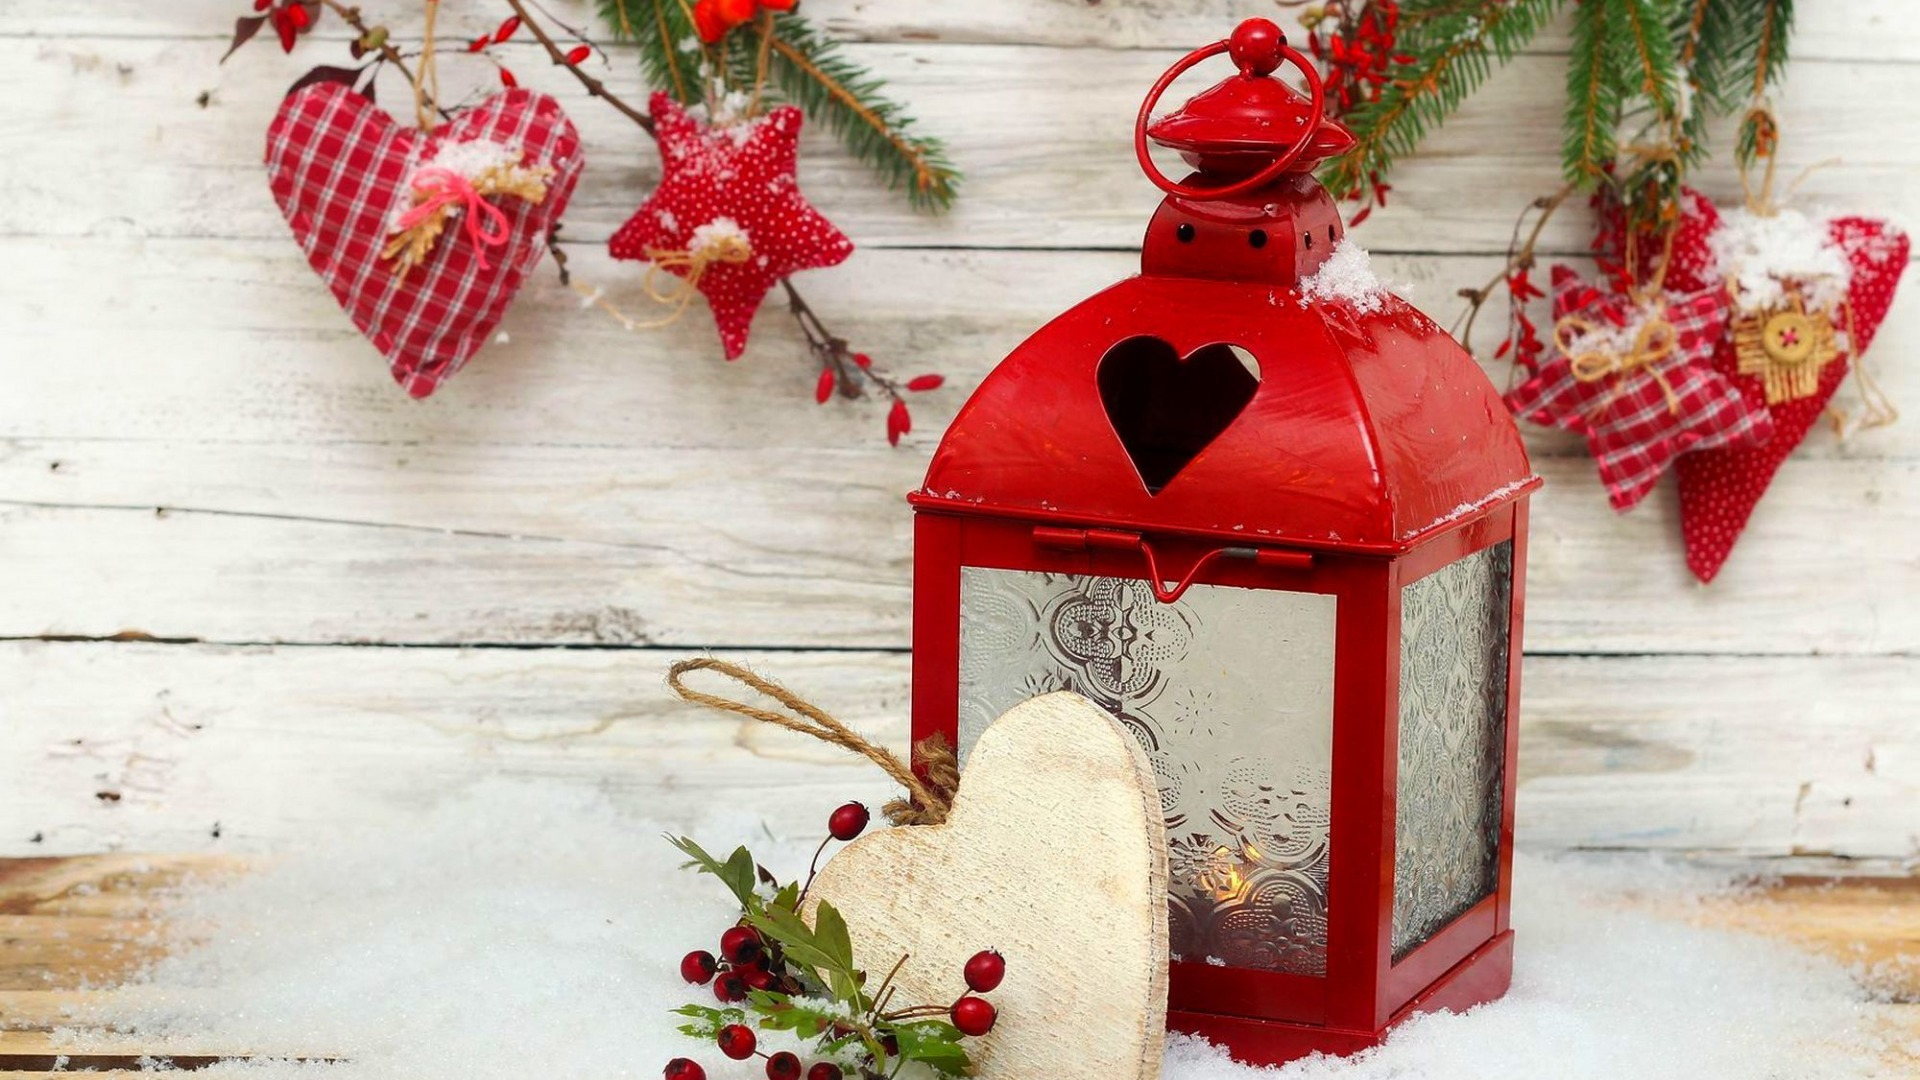 Download-winter-snow-holiday-heart-star-candles-Christmas-lantern-New-year-star-wallpaper-wp340208